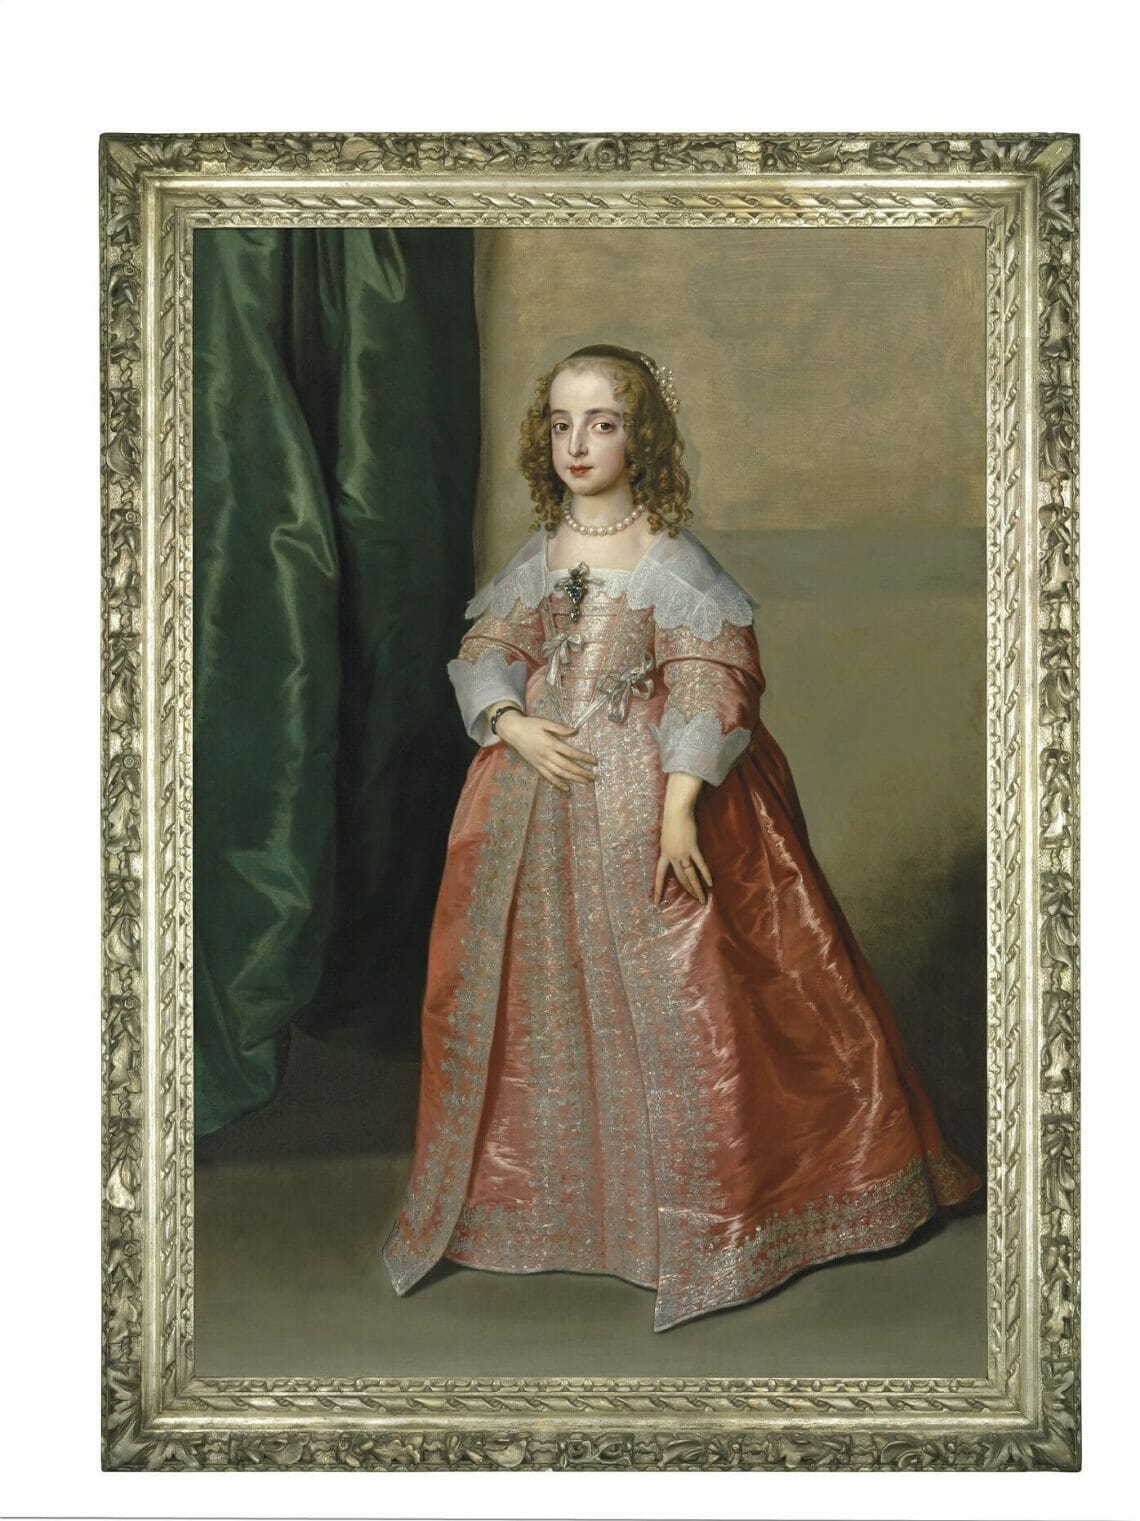 Portrait of Princess Mary CHRISTIES AUCTION painting AUCTION: A Masterpiece by Sir Anthony Van Dyck: Portrait of Princess Mary, daughter of King Charles I of England - EAT LOVE SAVOR International Luxury Lifestyle Magazine